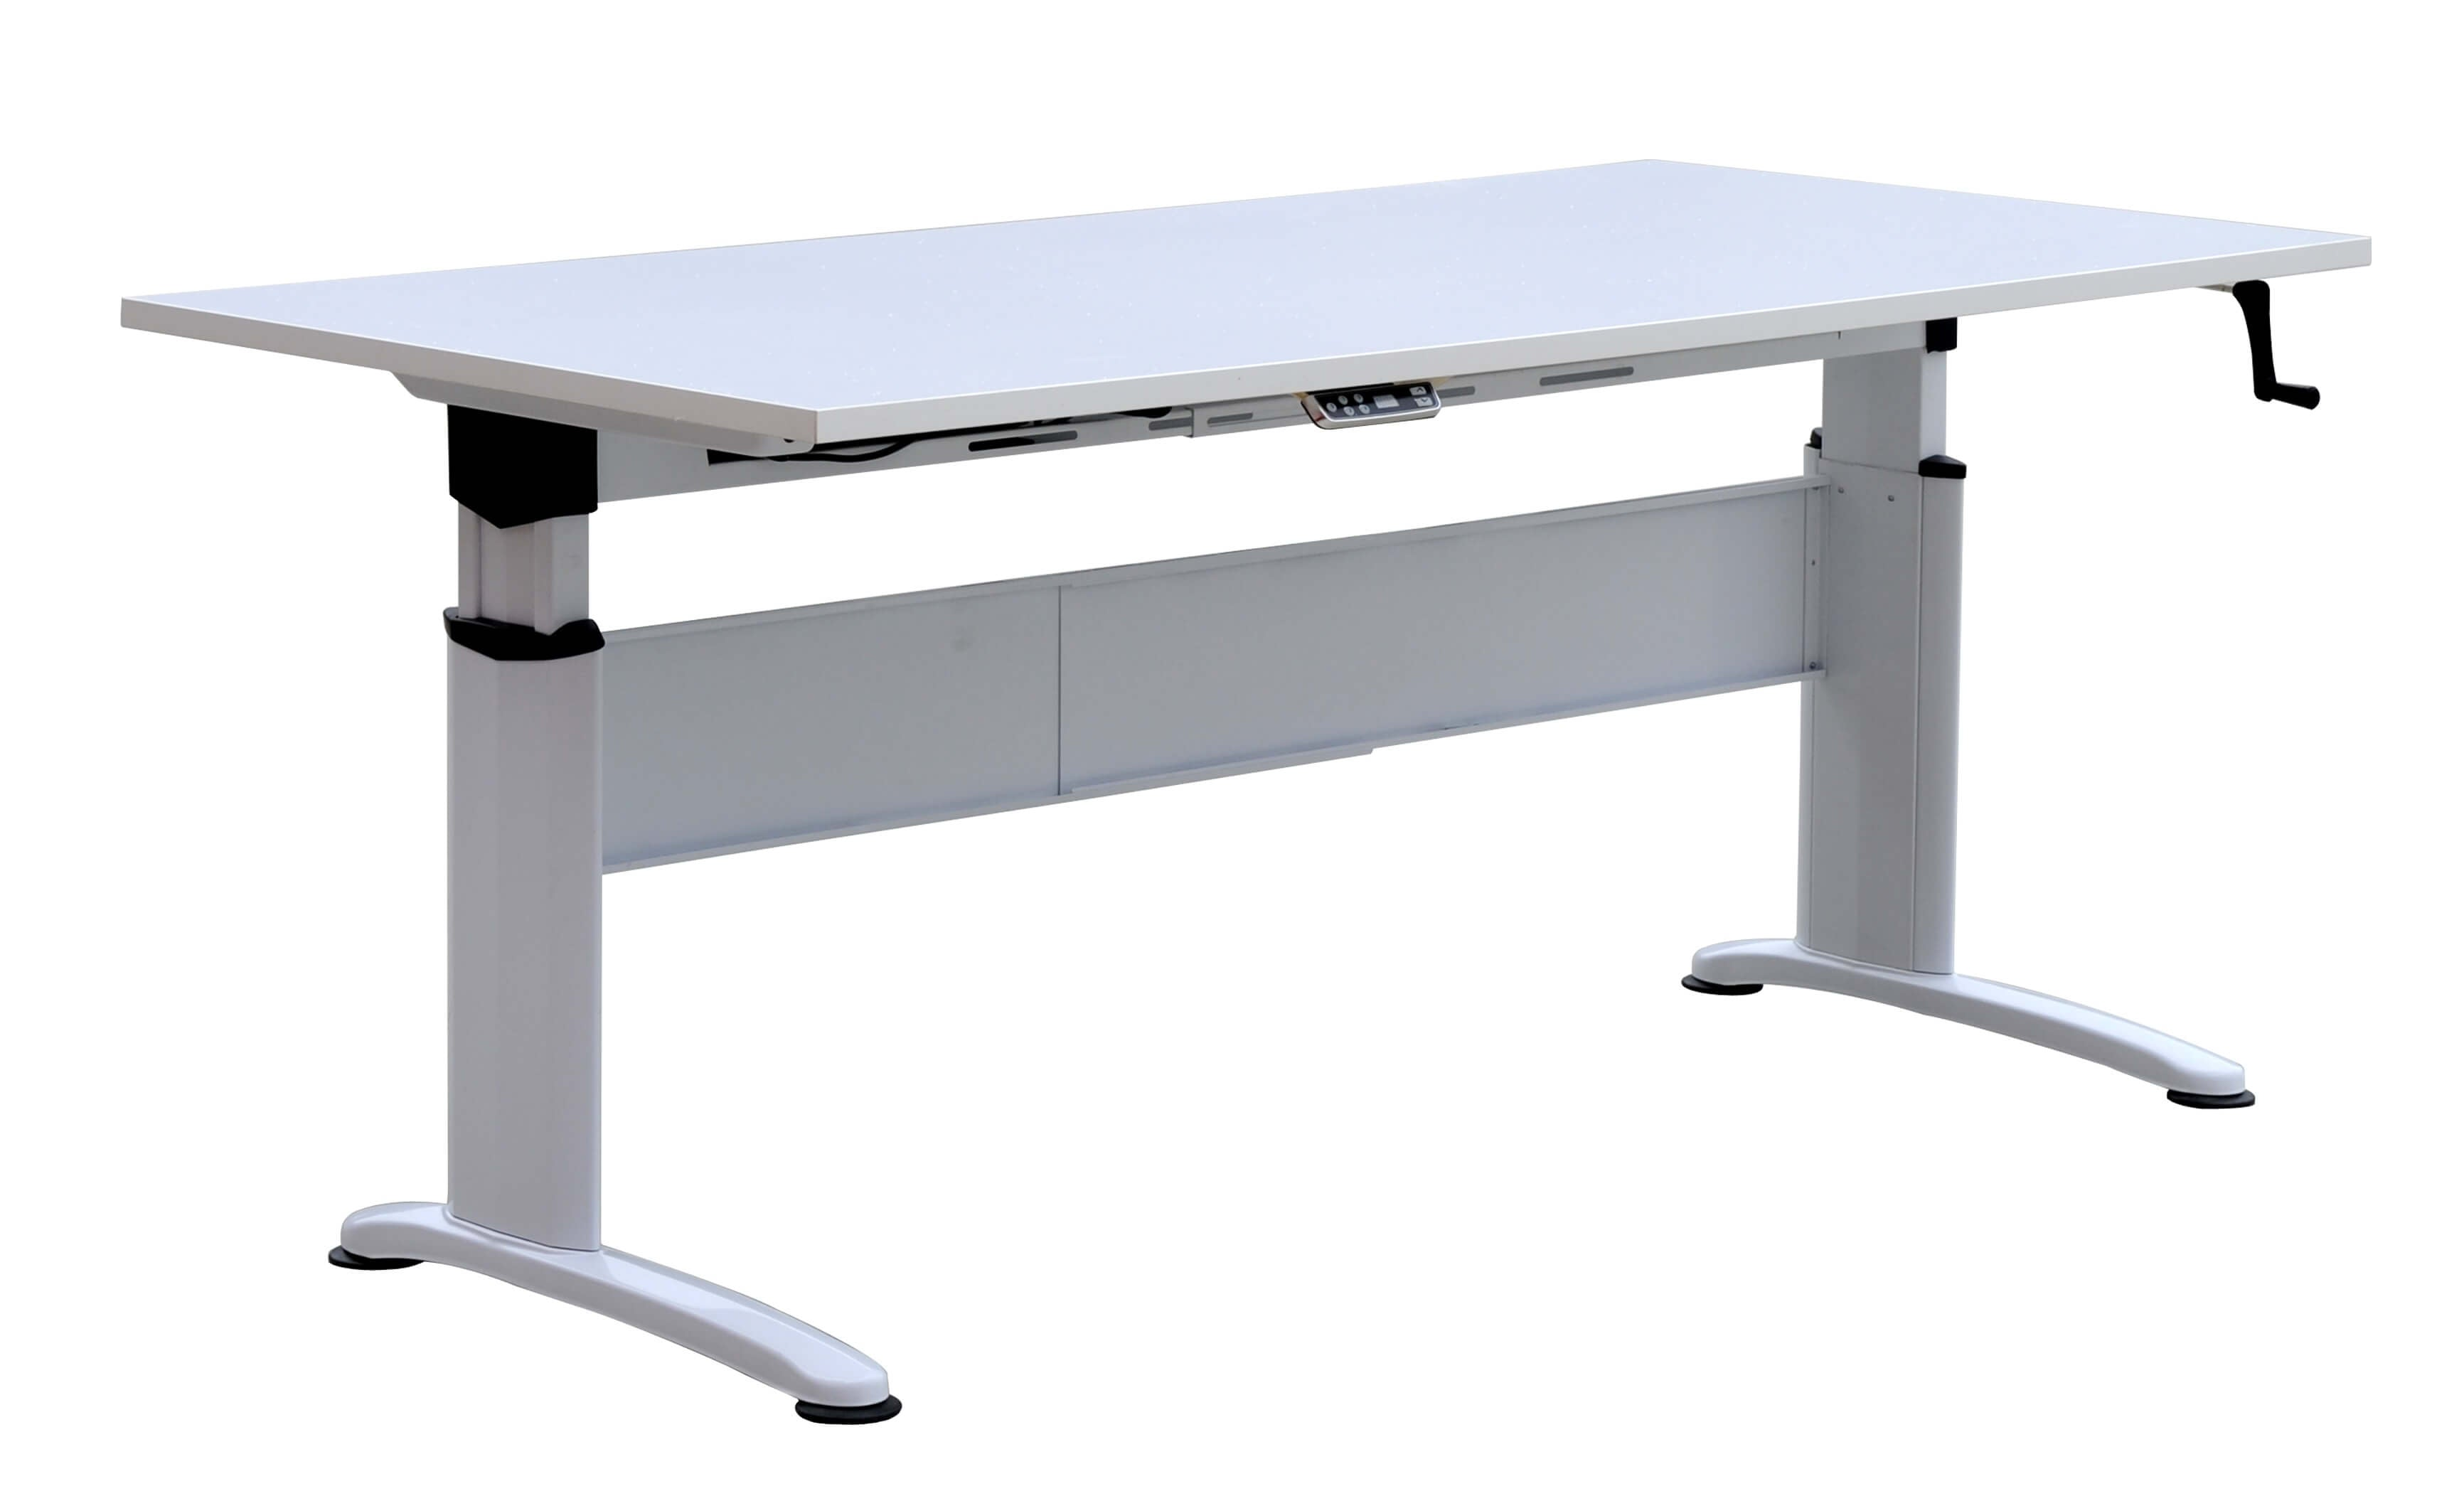 Auto Height Adjustable Desk For Home Or Office - KiPP